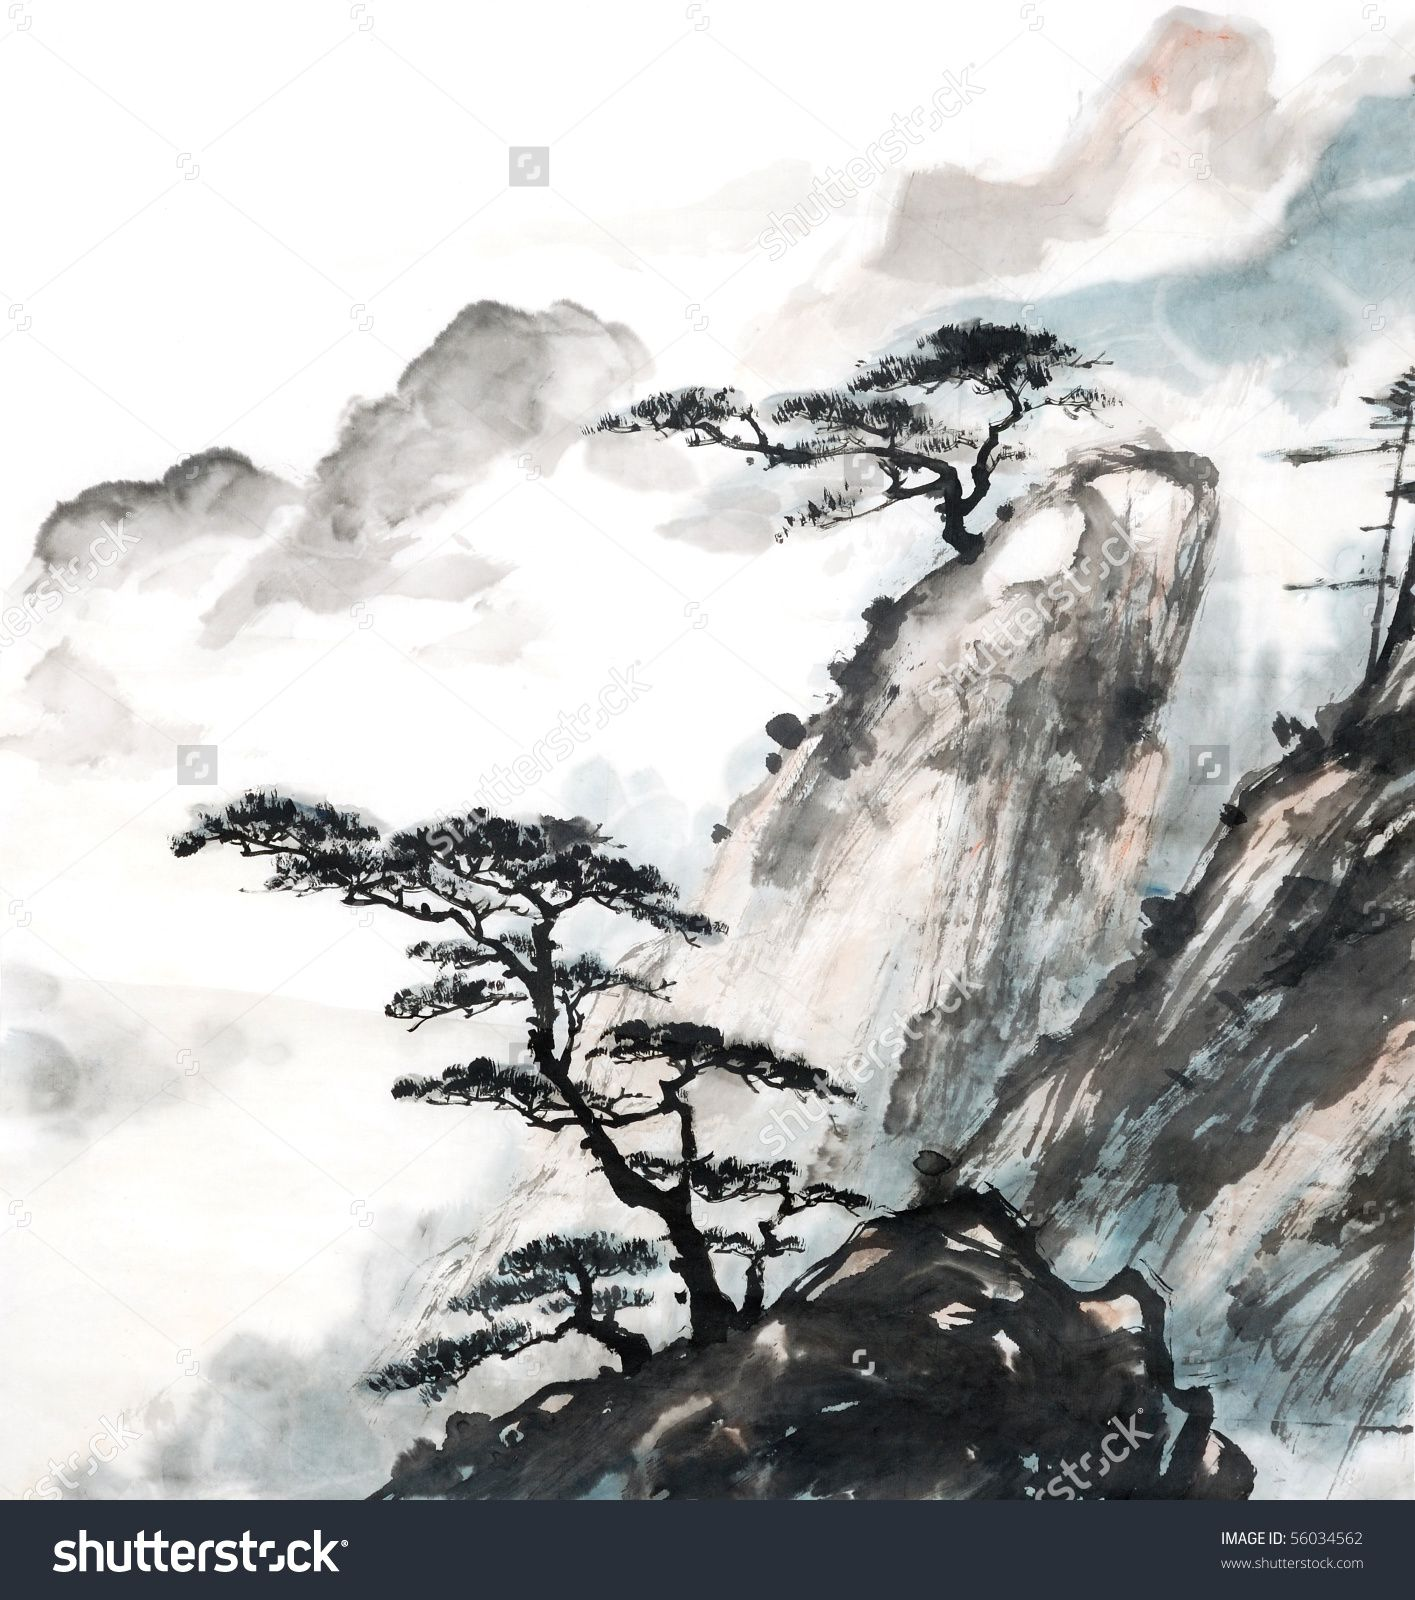 Chinese Landscape Painting Stock Photo 56034562 : Shutterstock